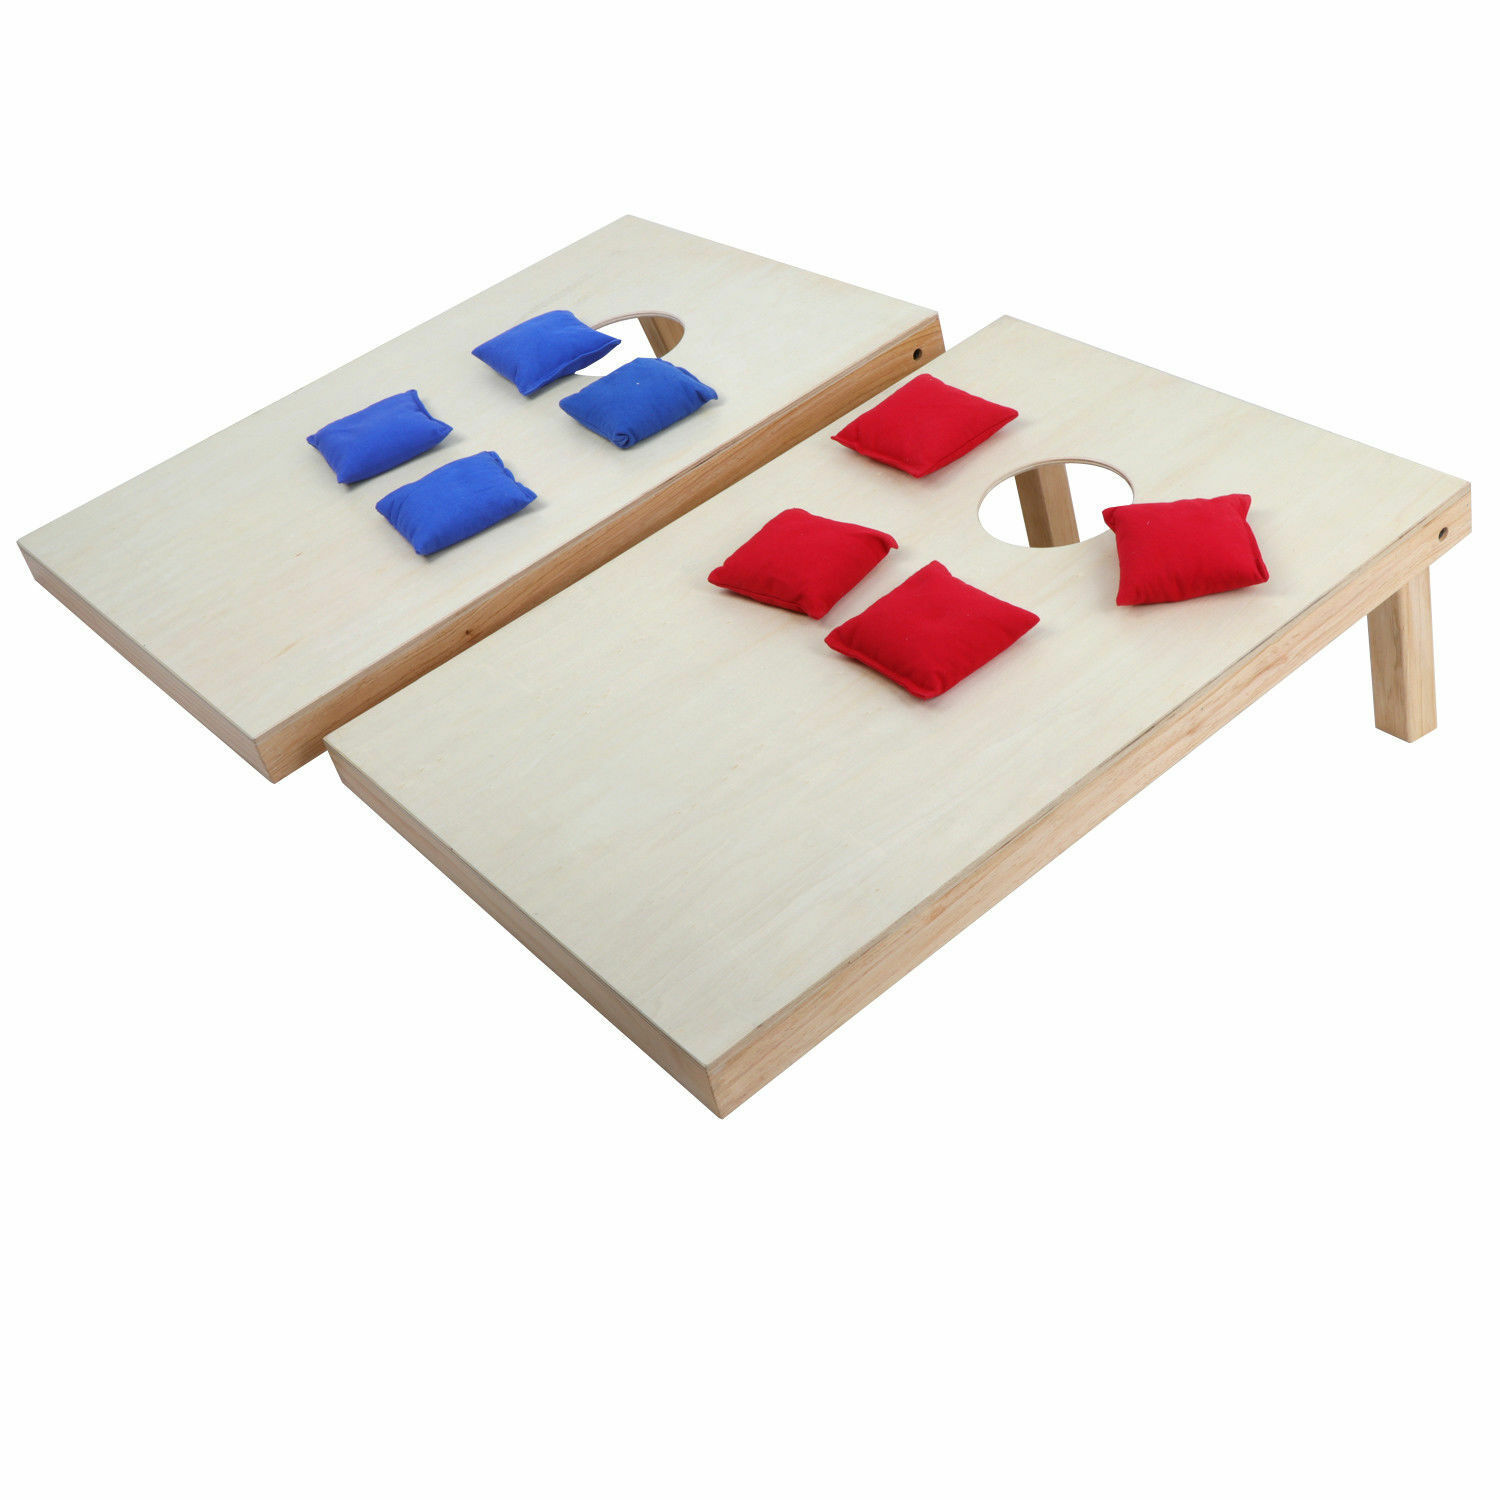 Portable Bean Bag Toss Cornhole Game Set Wood with 8 Bean Bags (bluee & Red)